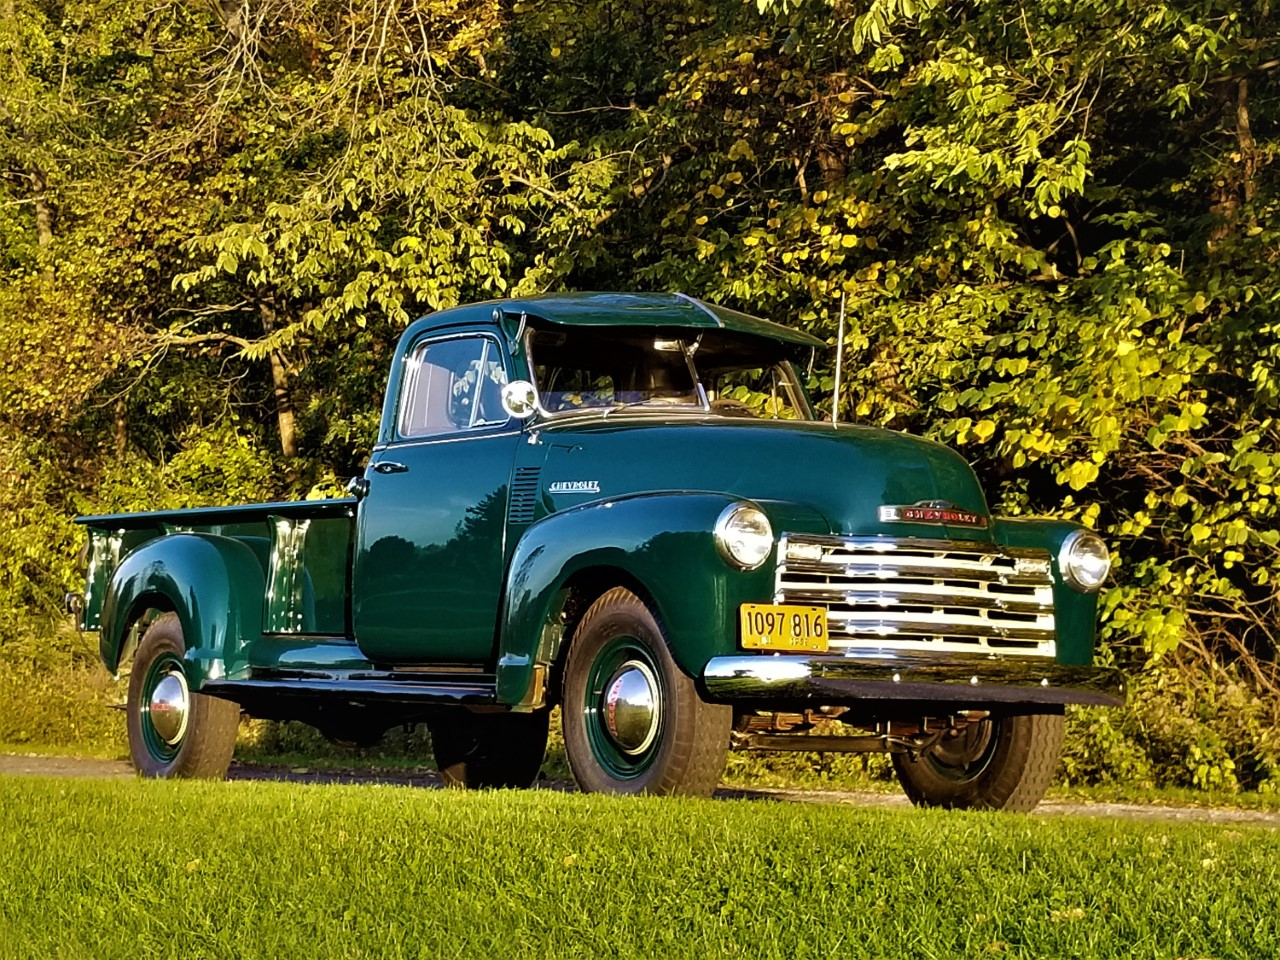 1952 Chevrolet 1 ton Pickup - 9 foot bed